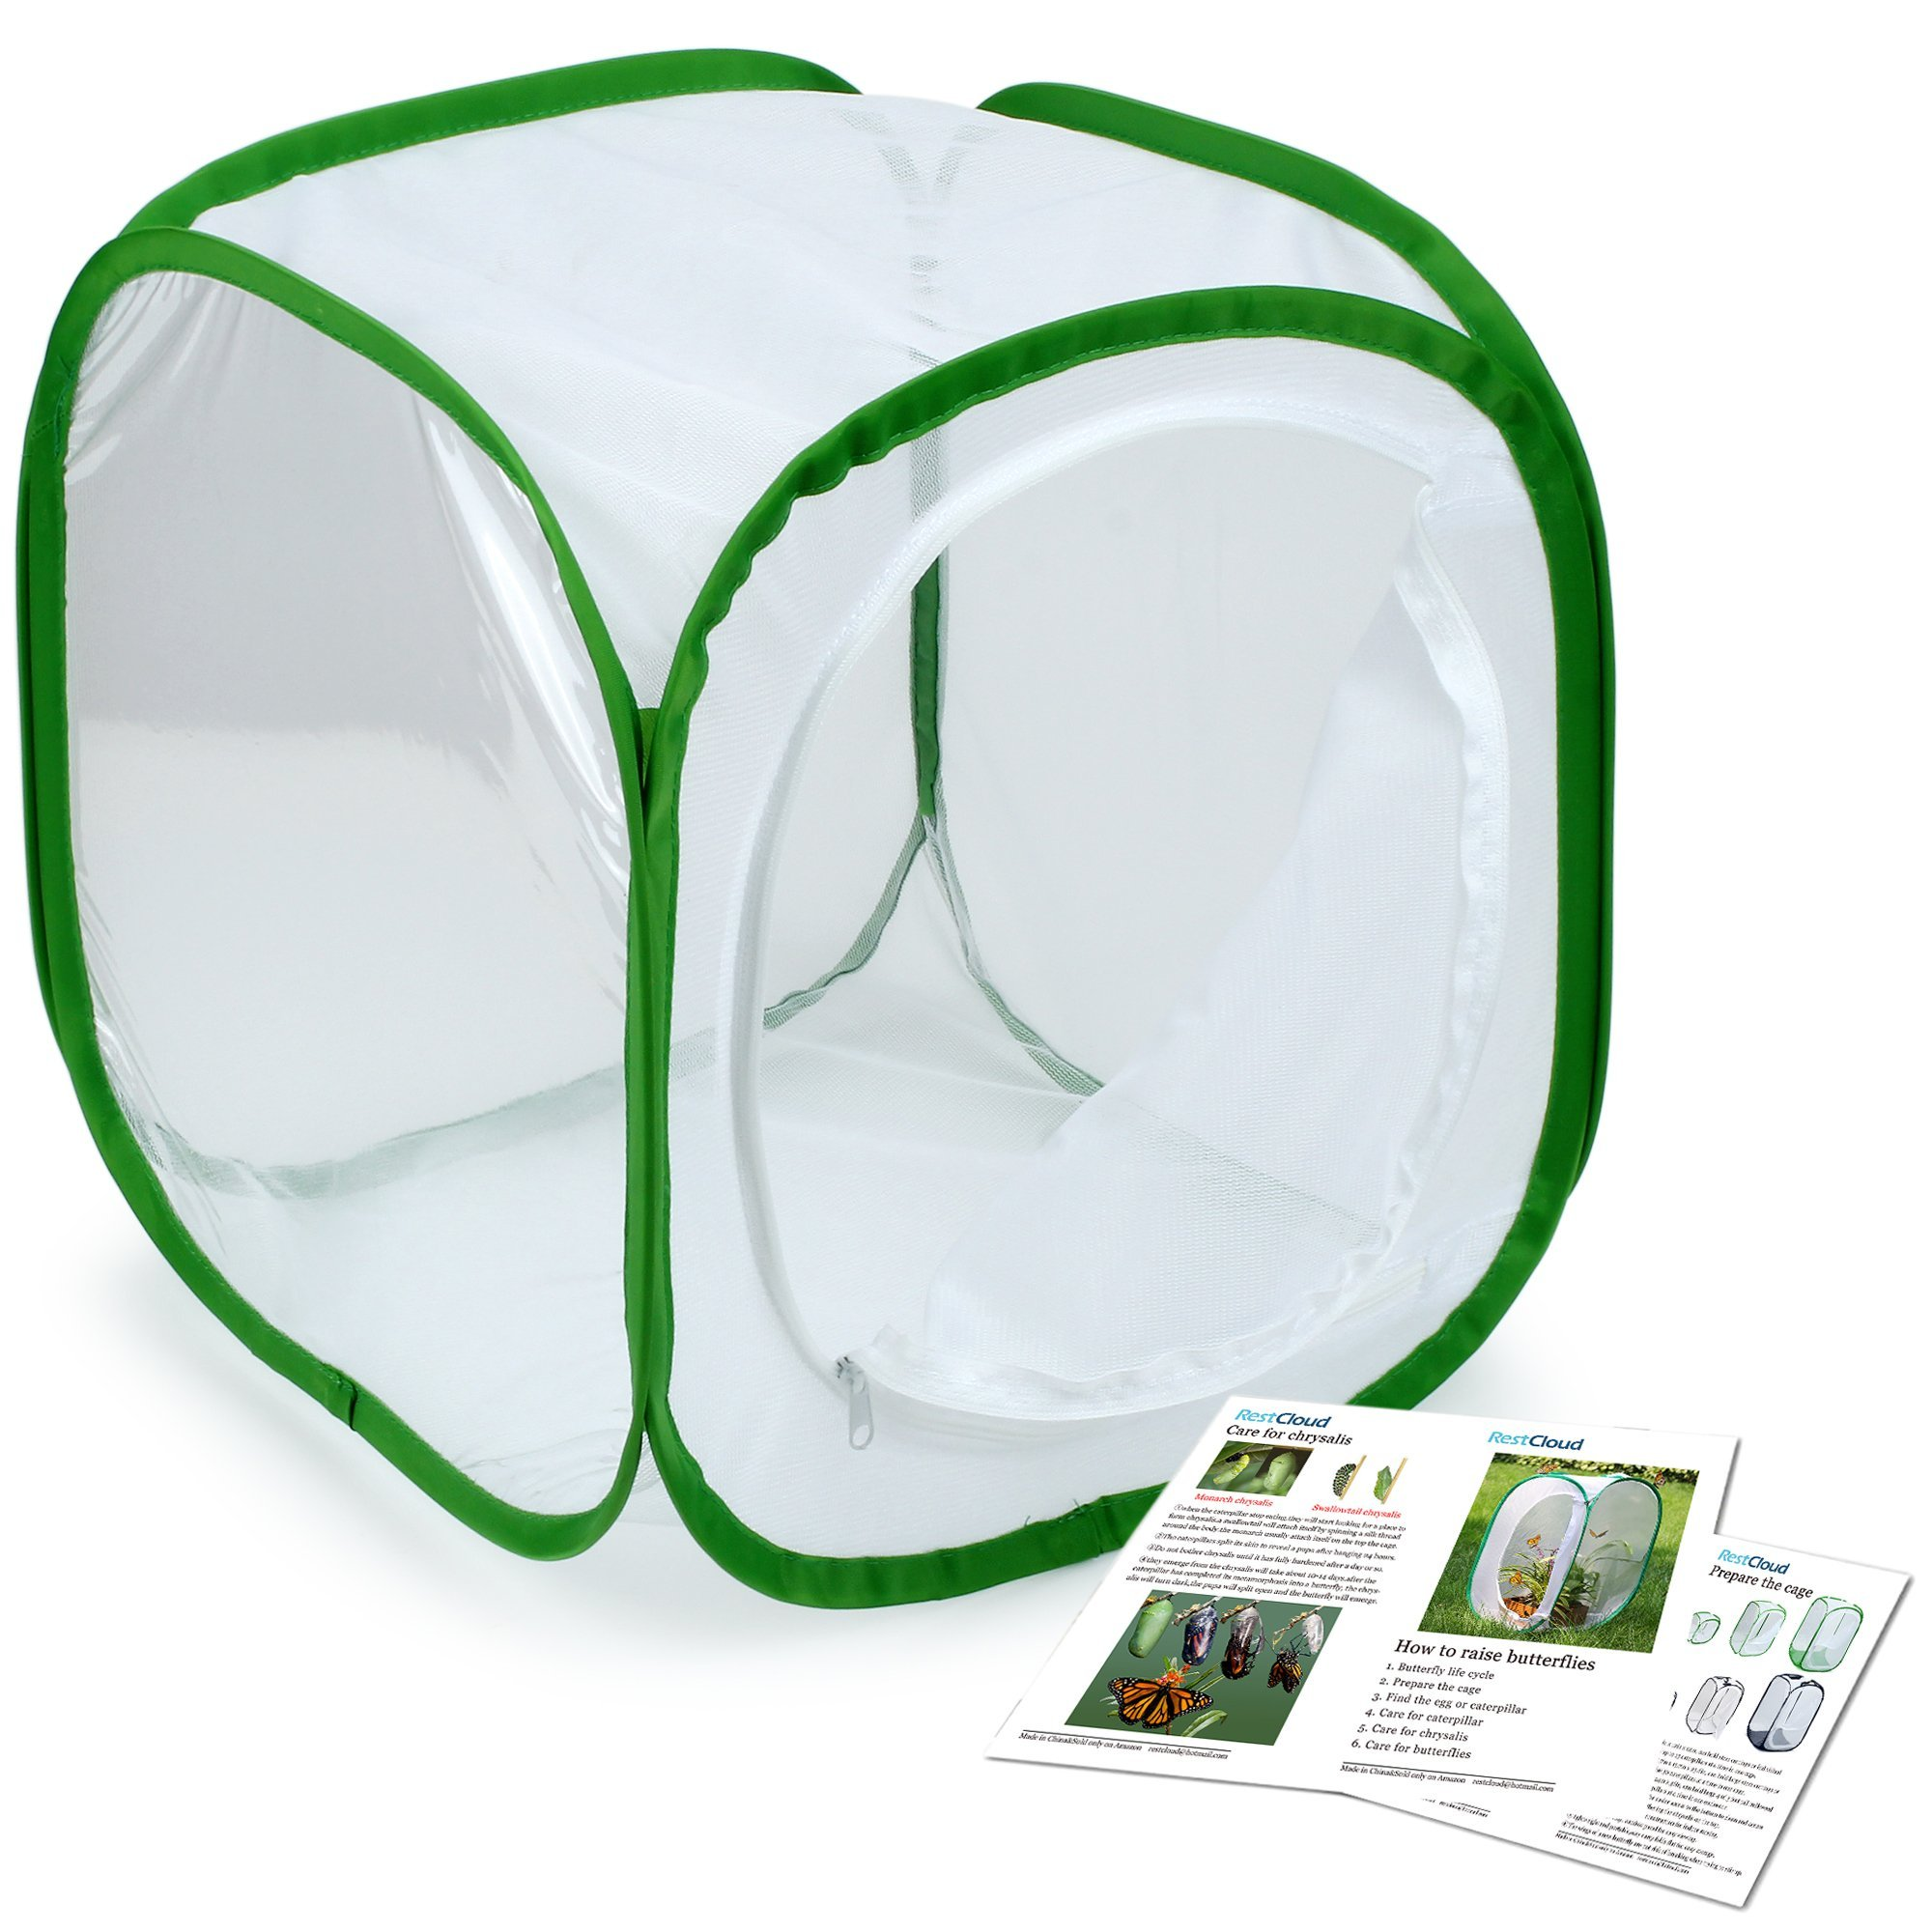 Restcloud Insect and Butterfly Habitat Cage Terrarium - Pop-up 12 X 12 X 12 Inches